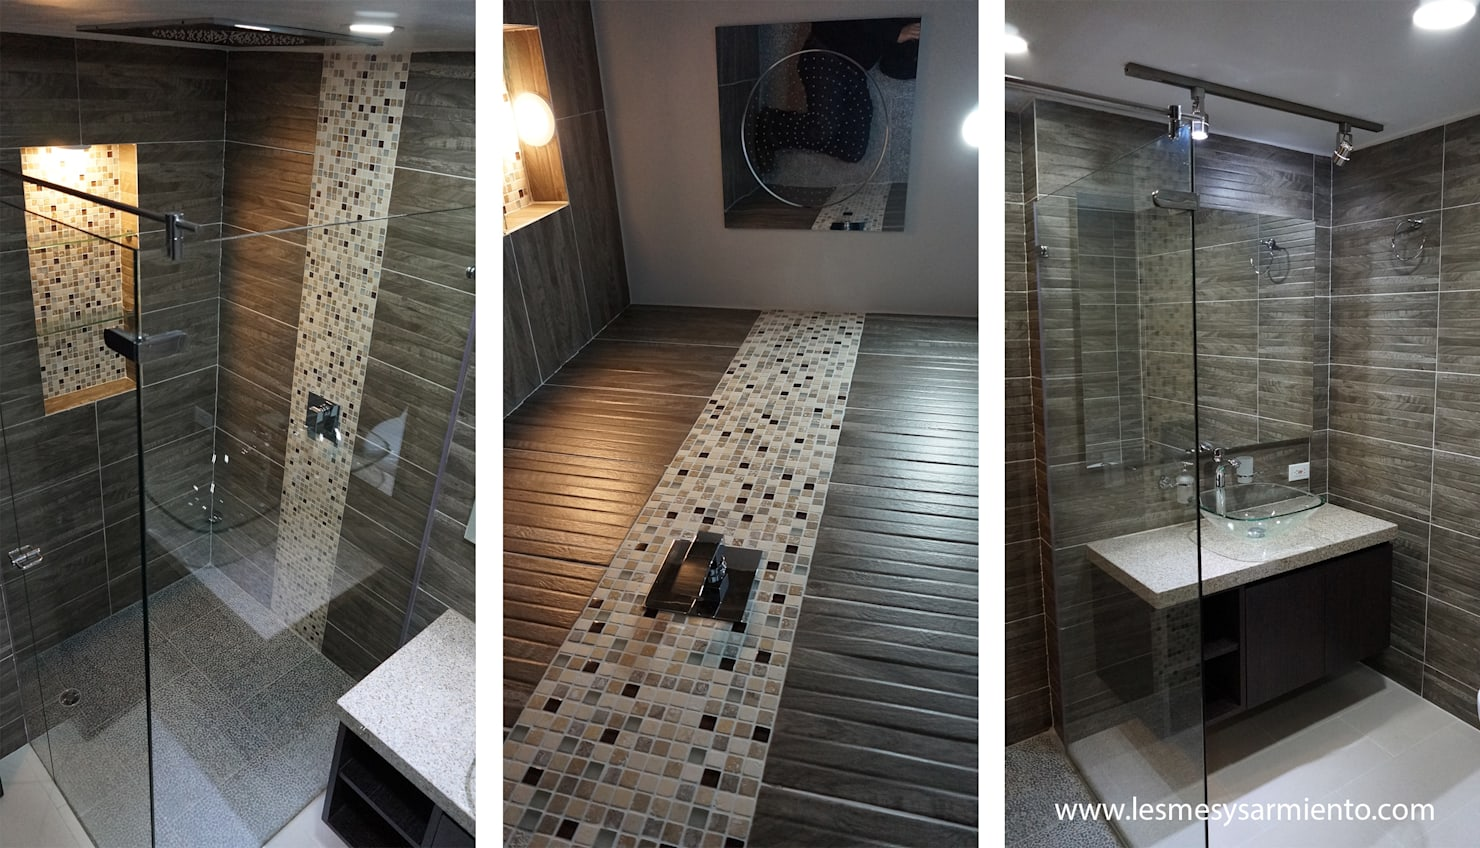 10 combinations of tiles that will look great in your bathroom